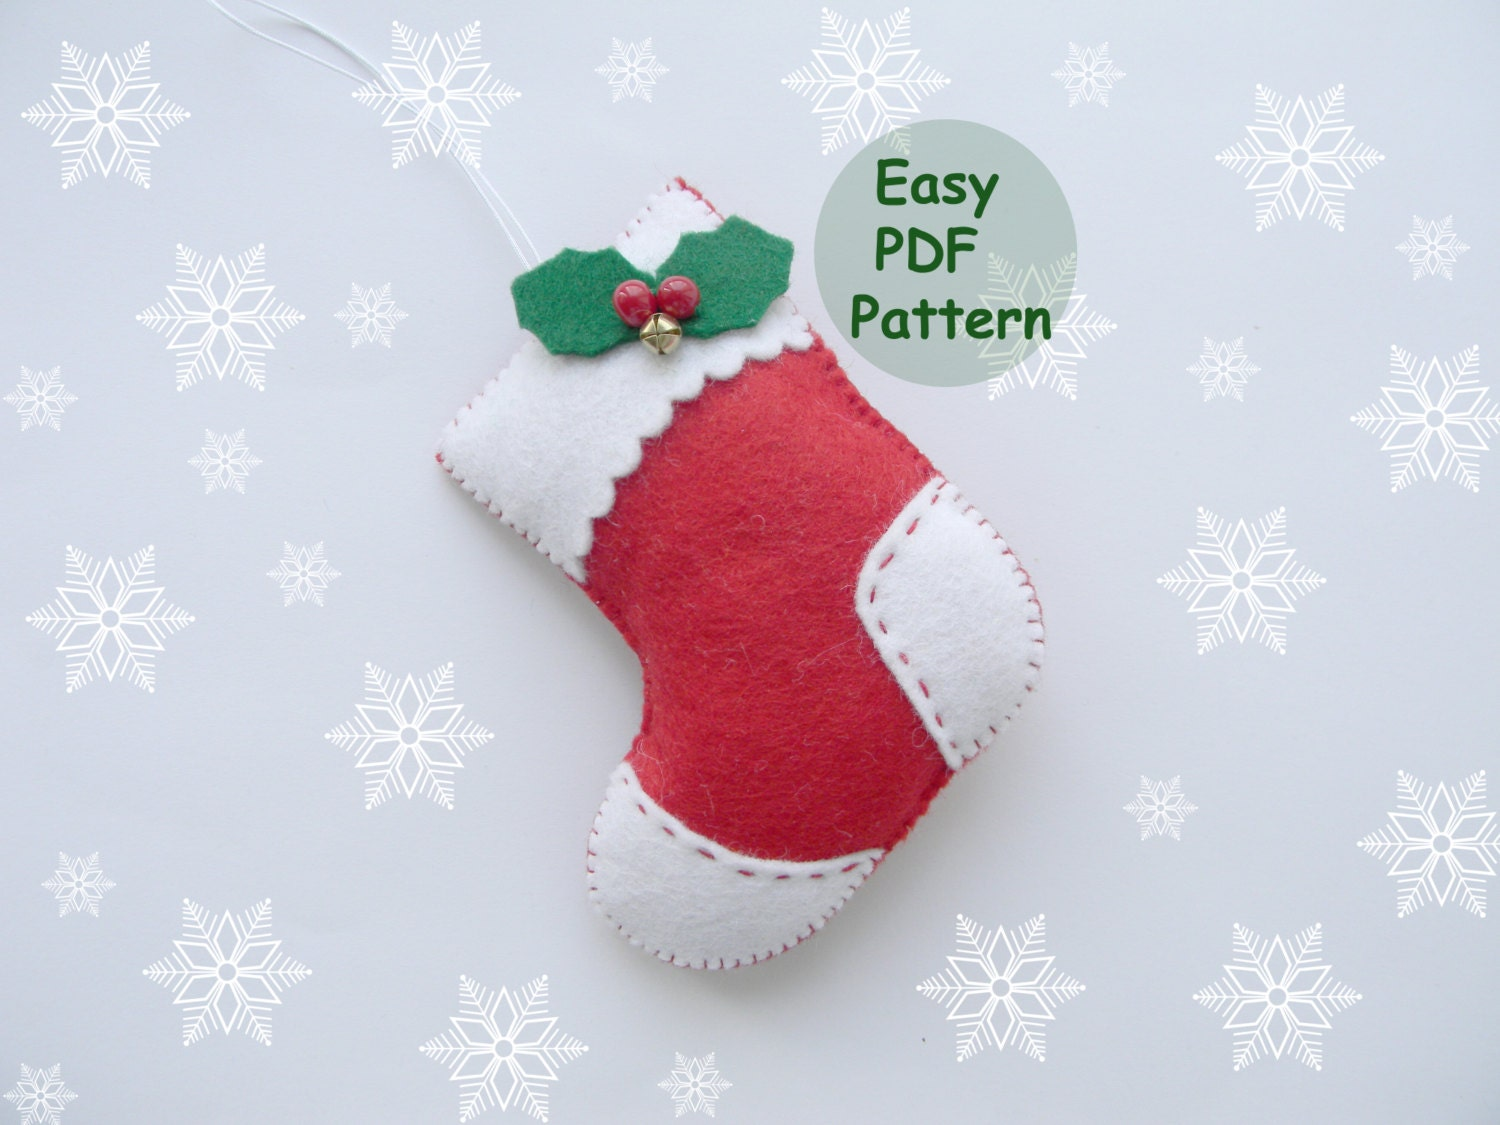 Pdf pattern felt stocking easy christmas stocking ornaments pdf pattern felt stocking easy christmas stocking ornaments pattern red felt christmas ornament easy sewing pattern diy advent ornament jeuxipadfo Gallery